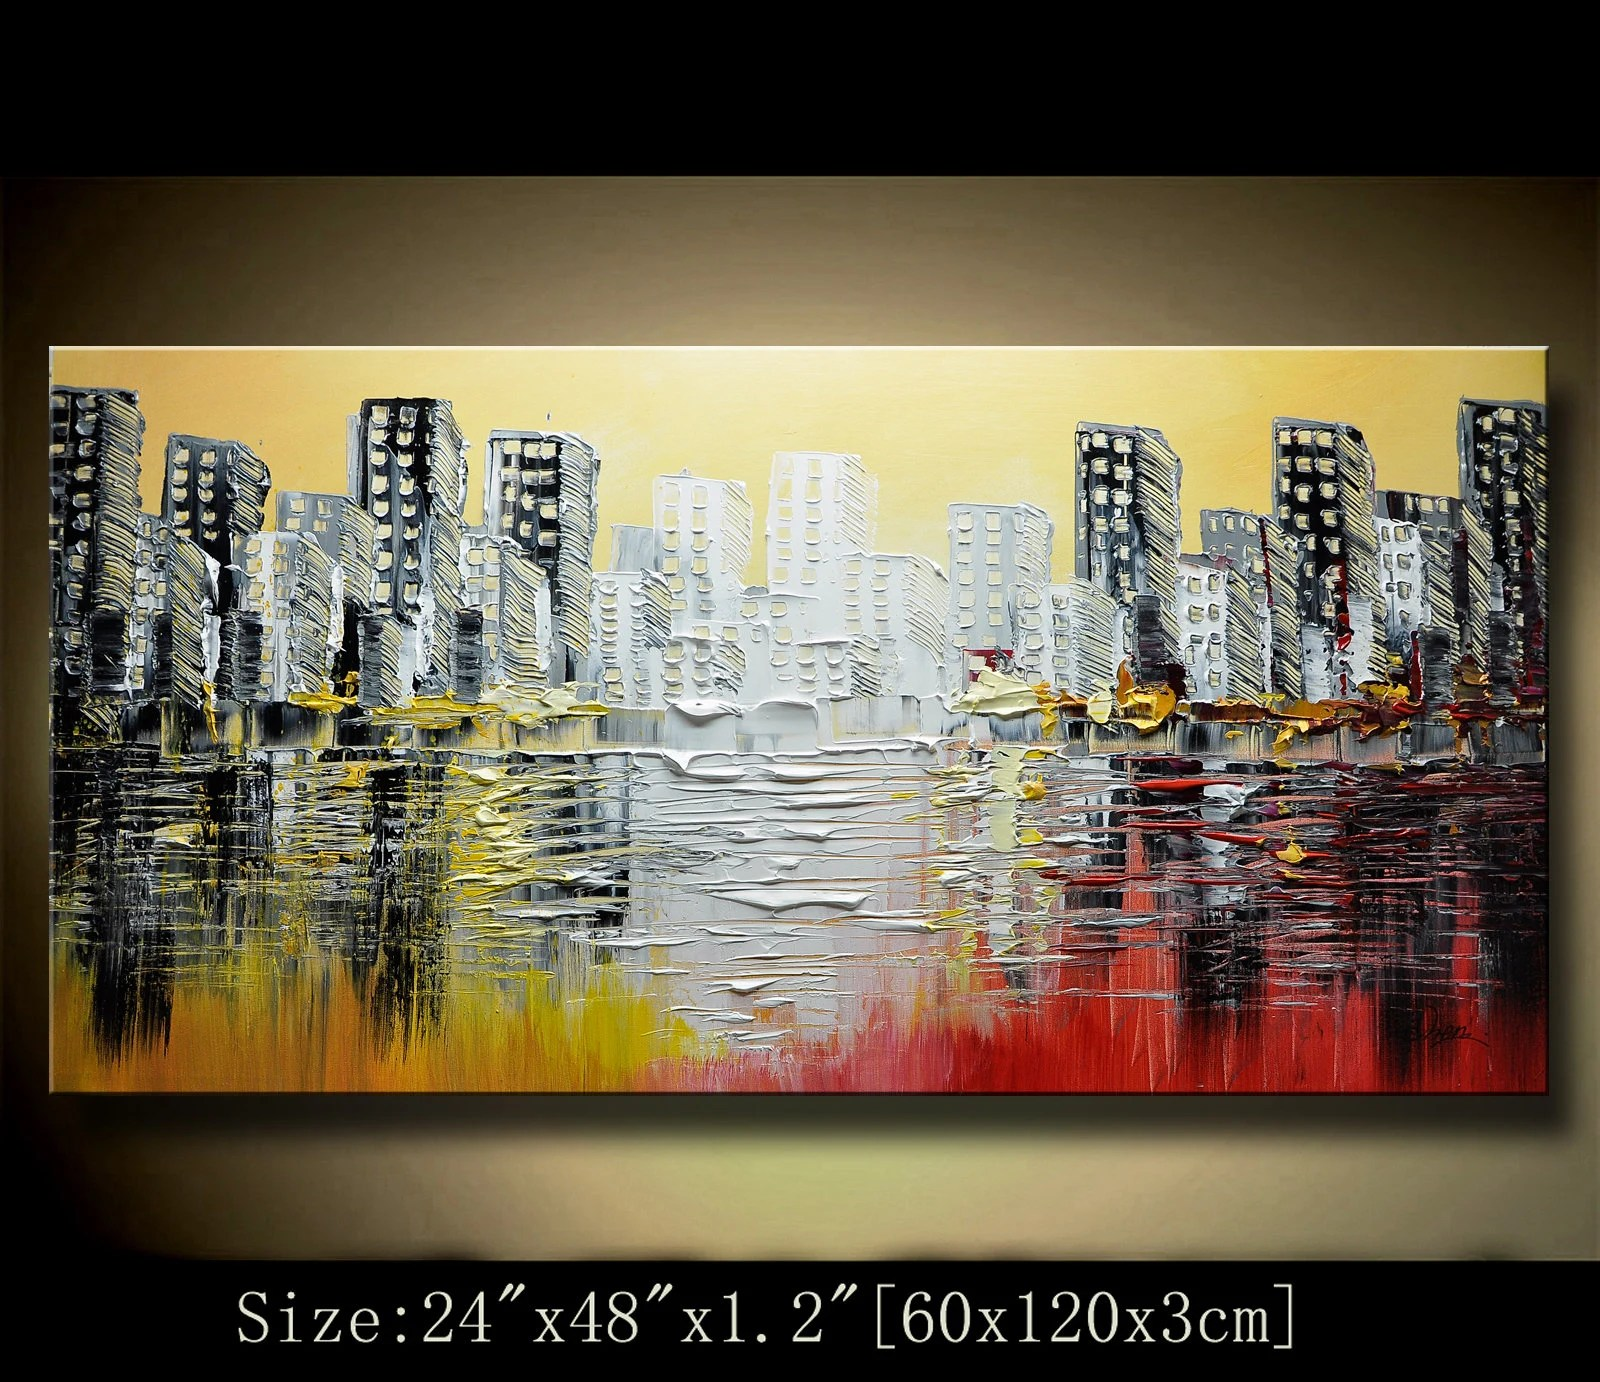 Wall Paintings For Sale Abstract Wall Painting Original Palette Knife Painting Texture Acrylic Painting Multicolored Cityscape Wall Contemporary Art By Chen New95